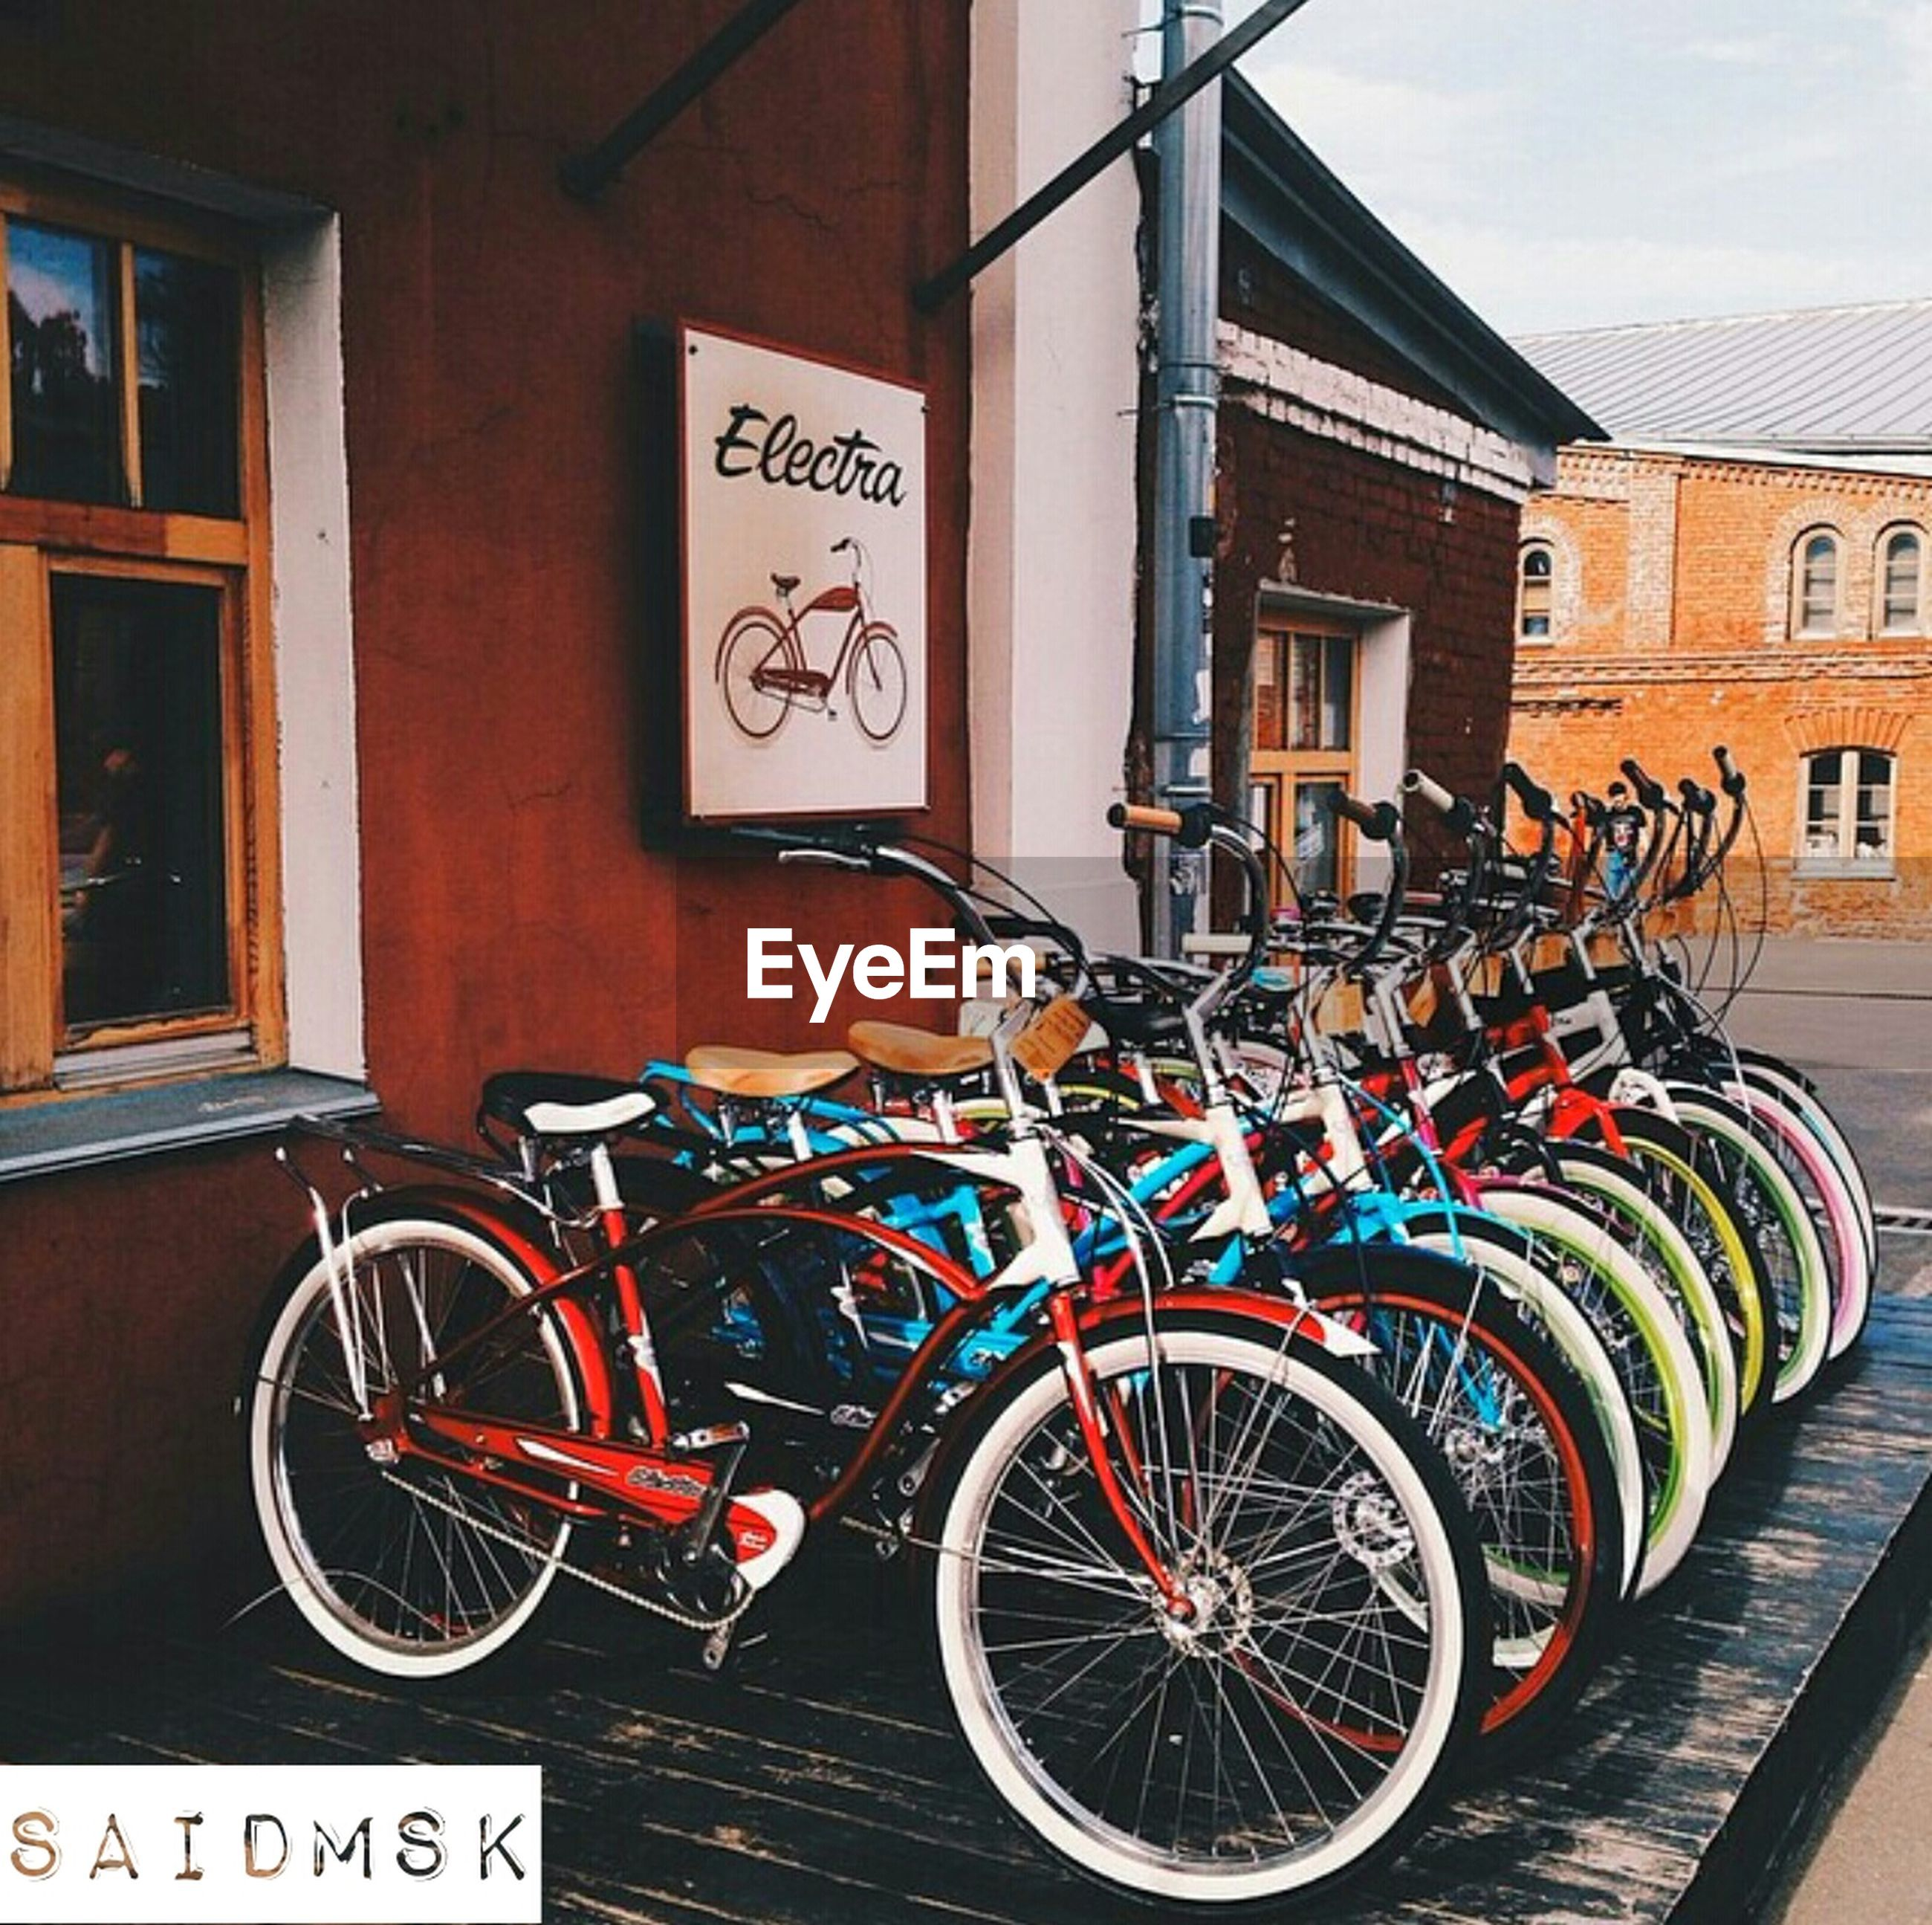 building exterior, bicycle, architecture, built structure, transportation, mode of transport, stationary, parked, land vehicle, graffiti, parking, text, wall - building feature, house, street, day, outdoors, no people, store, residential structure